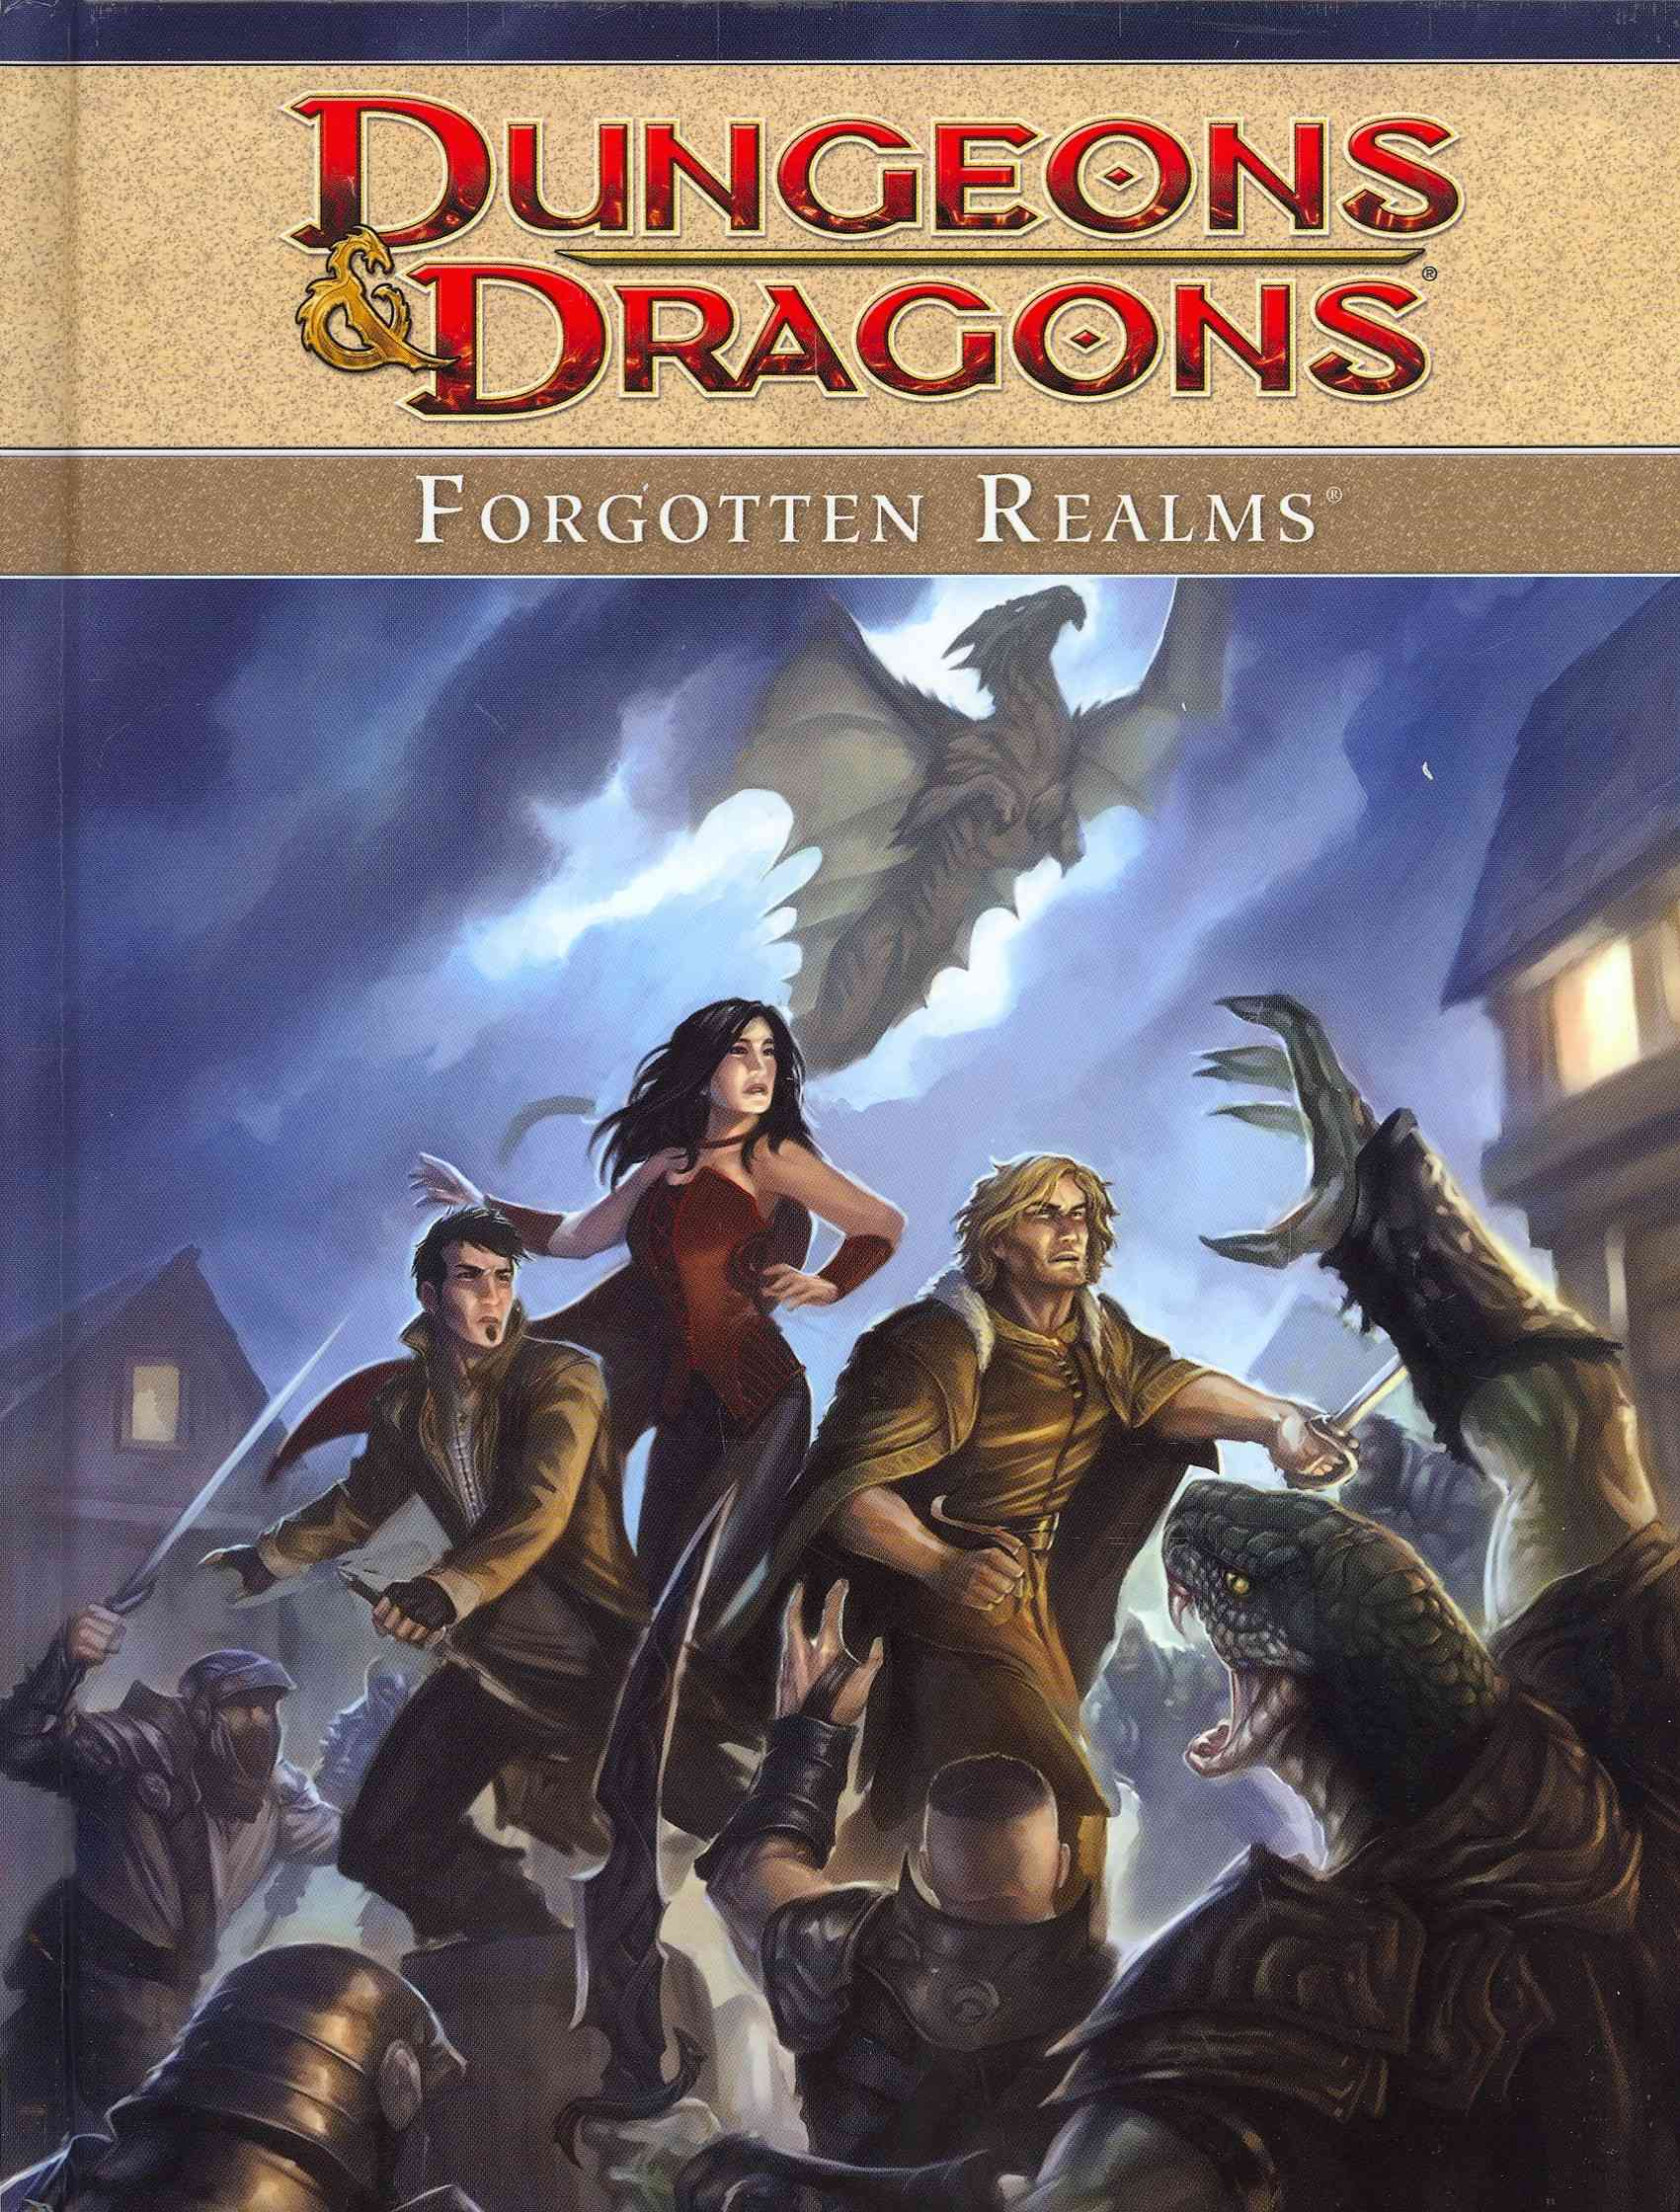 Dungeons & Dragons: Forgotten Realms (Hardcover) - Thumbnail 0